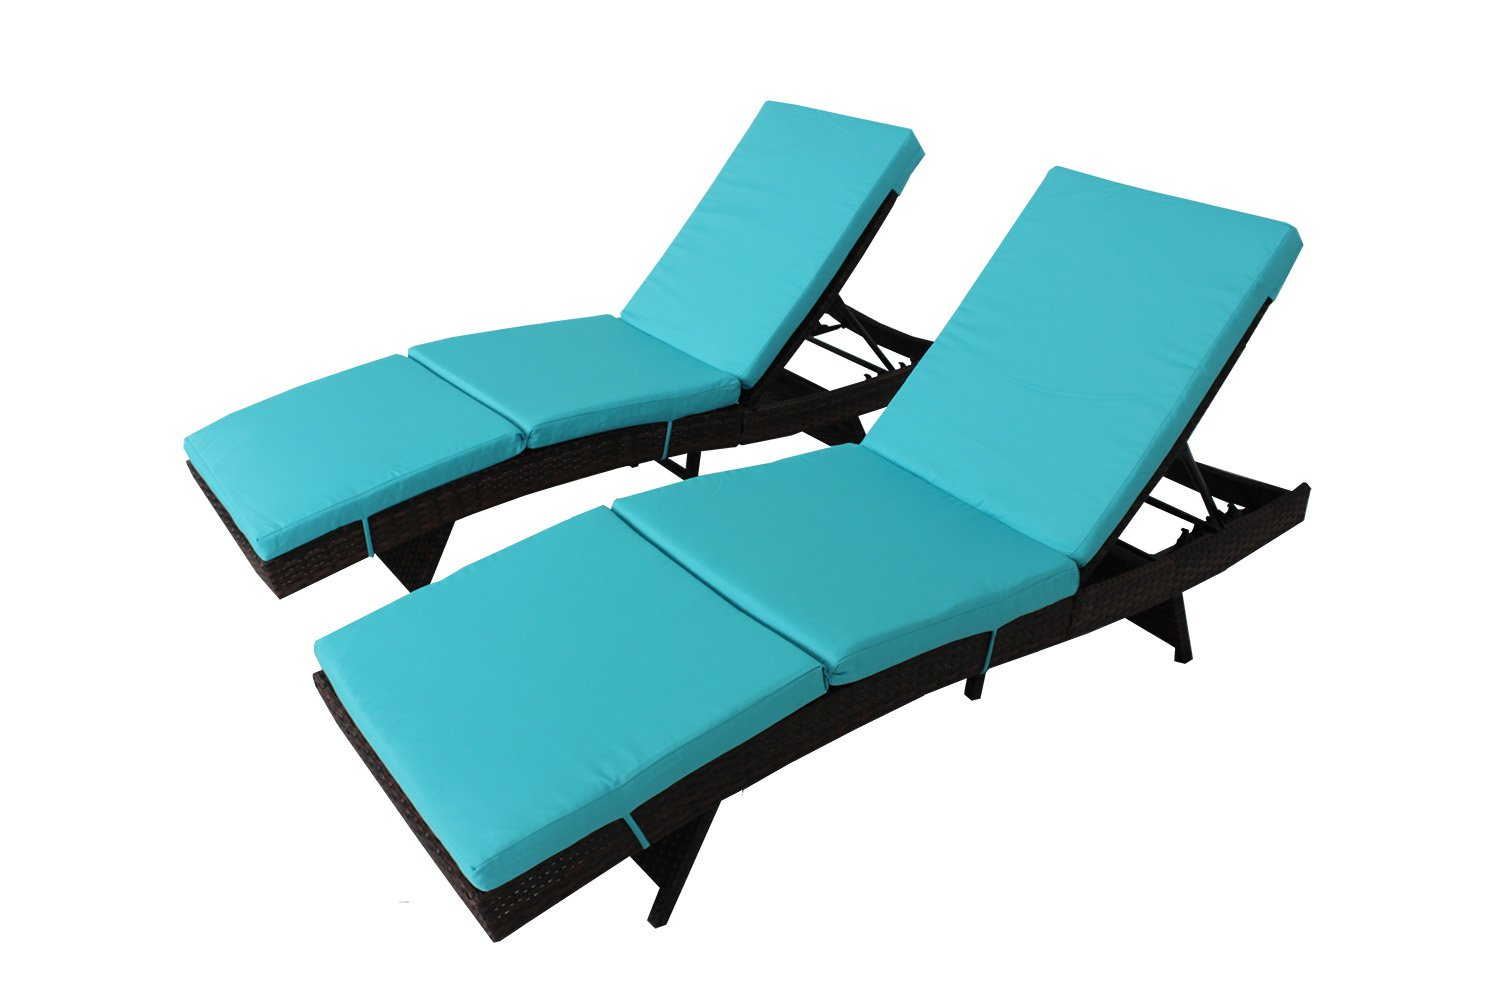 Patio Furniture Chair Patio Brown PE Rattan Wicker Adjustable Backrest Cushioned Outdoor Chaise Lounge Chair(Turquoise Cushions,Set of 2)